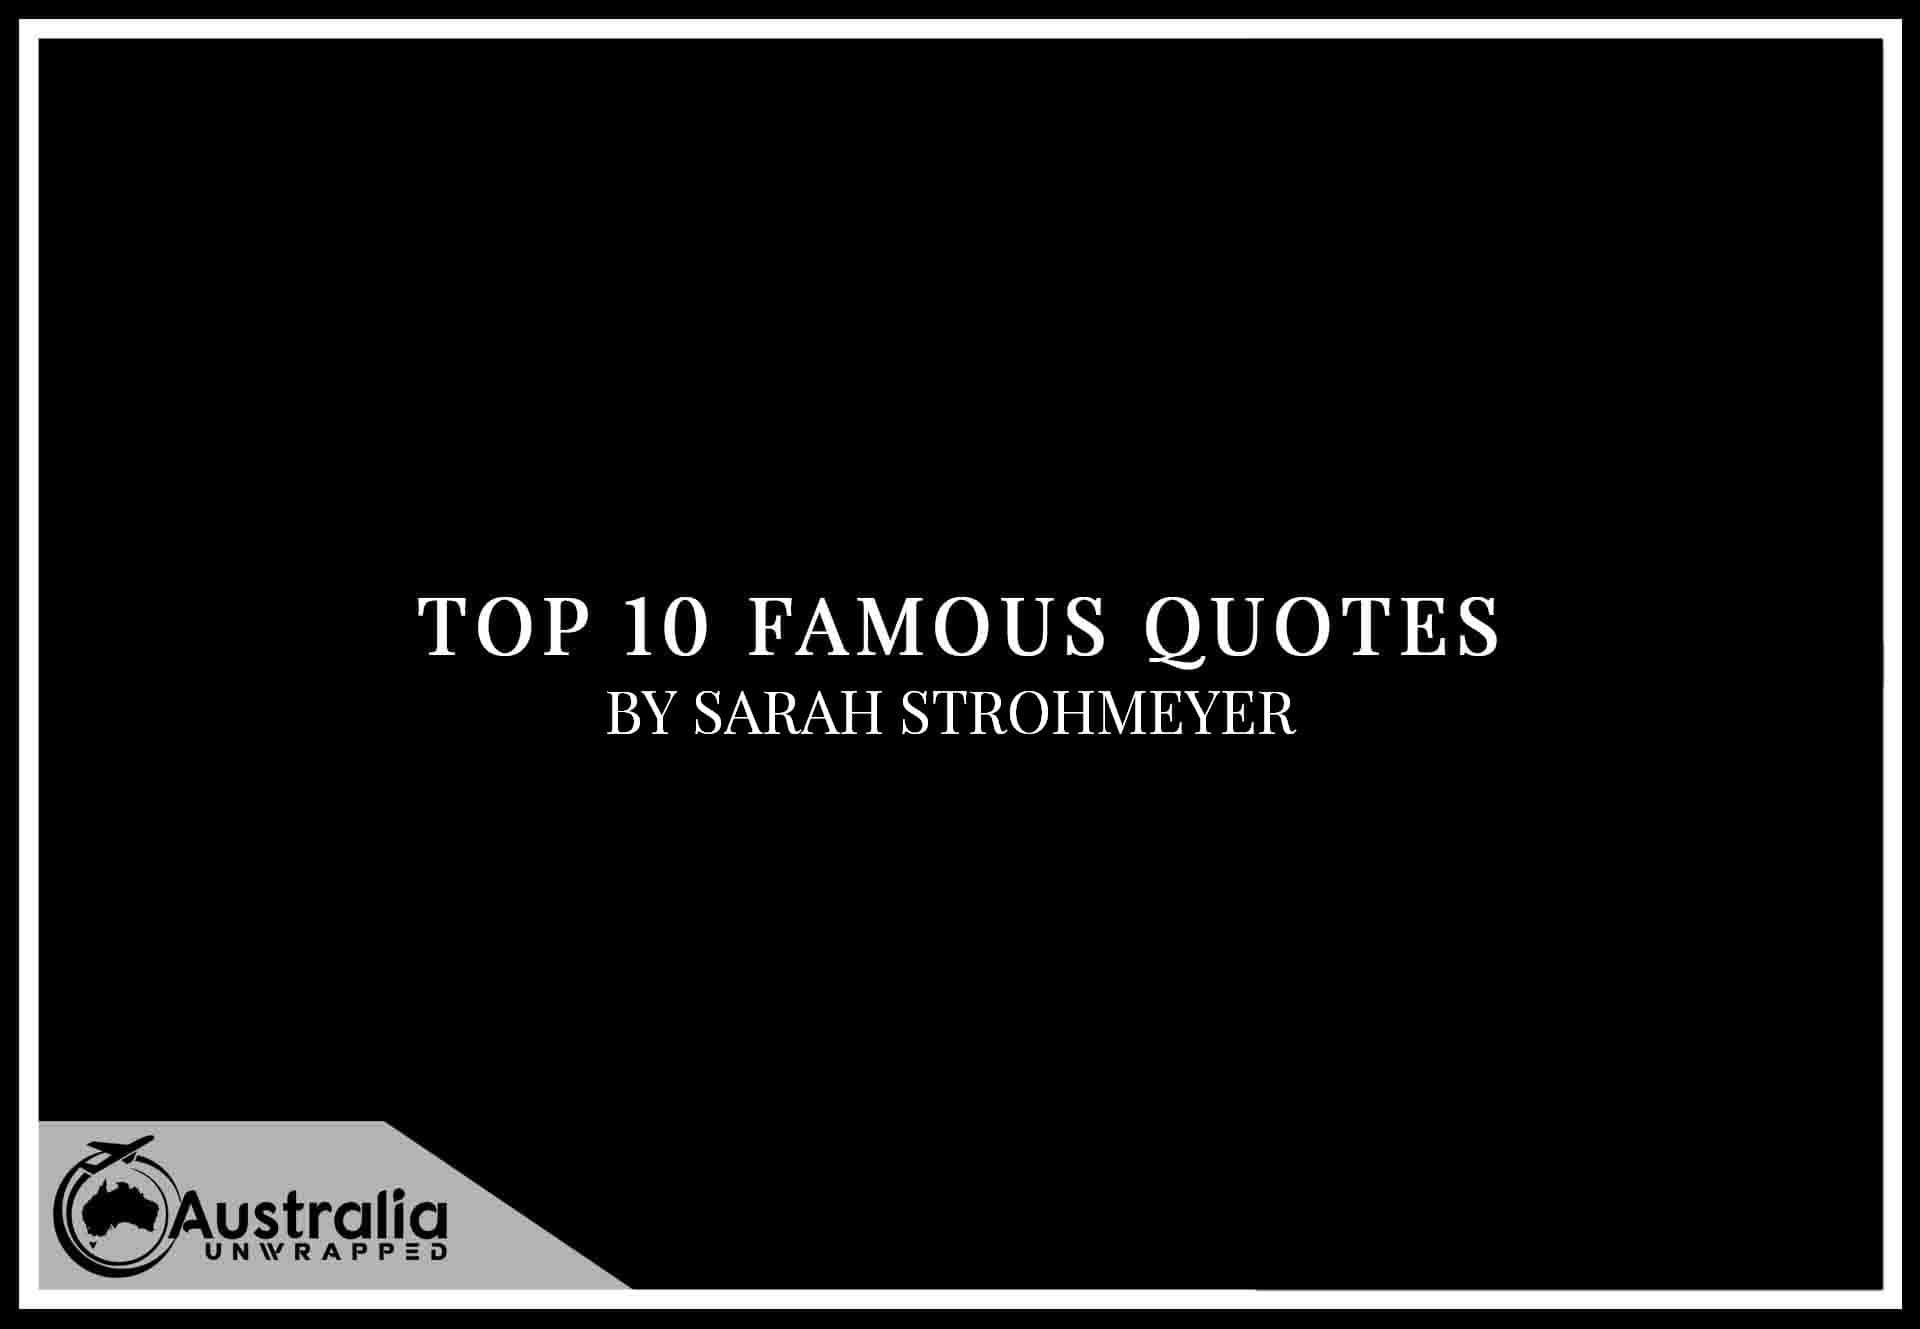 Top 10 Famous Quotes by Author Sarah Strohmeyer